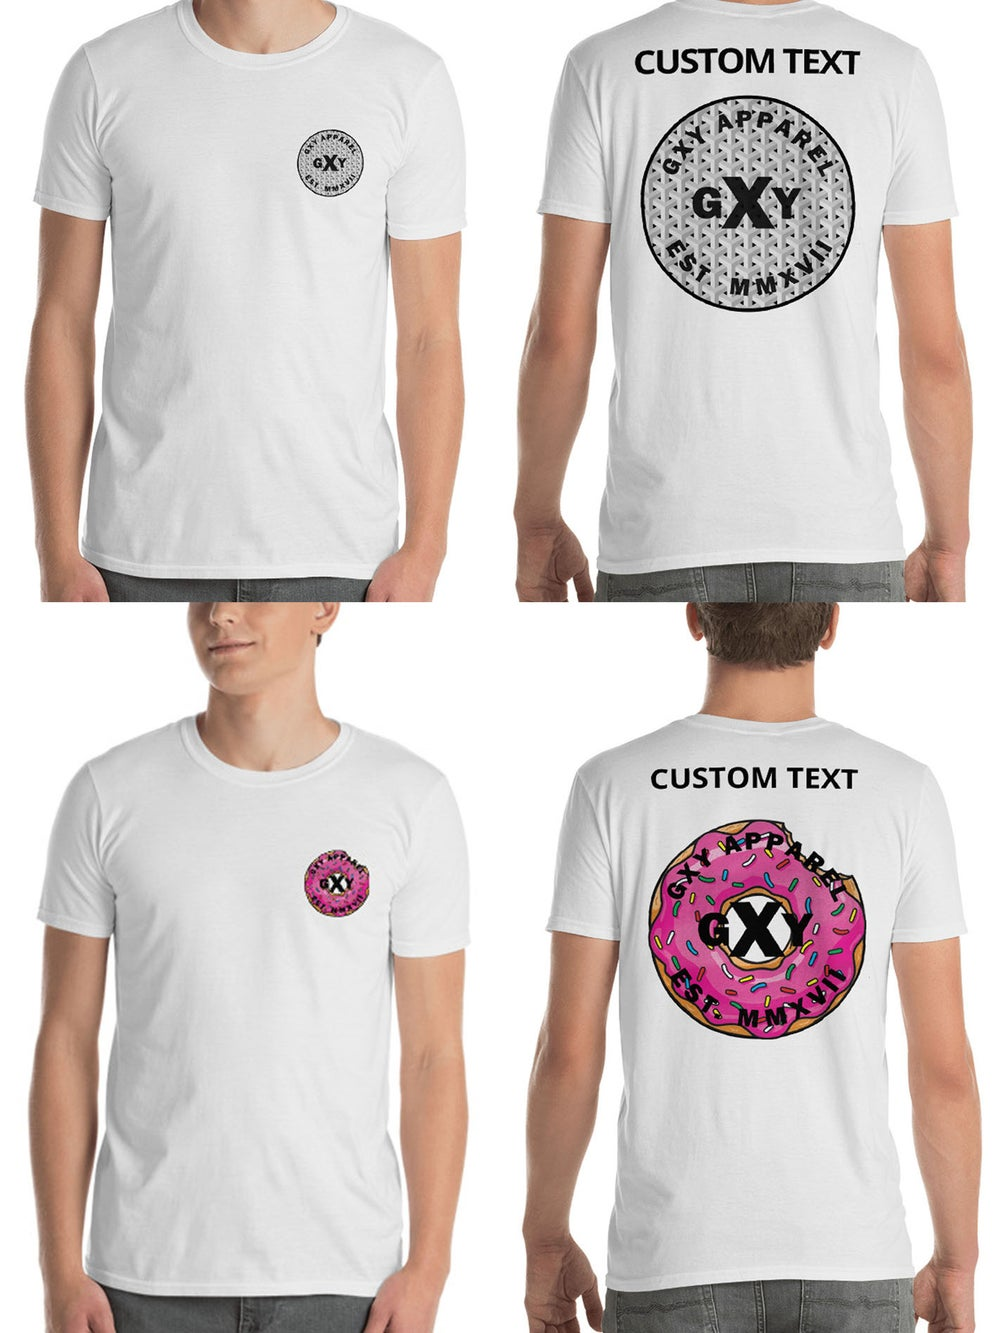 Image of GXY Lucky Doughnut Tee and Illusion Tee(Personalisation Available)